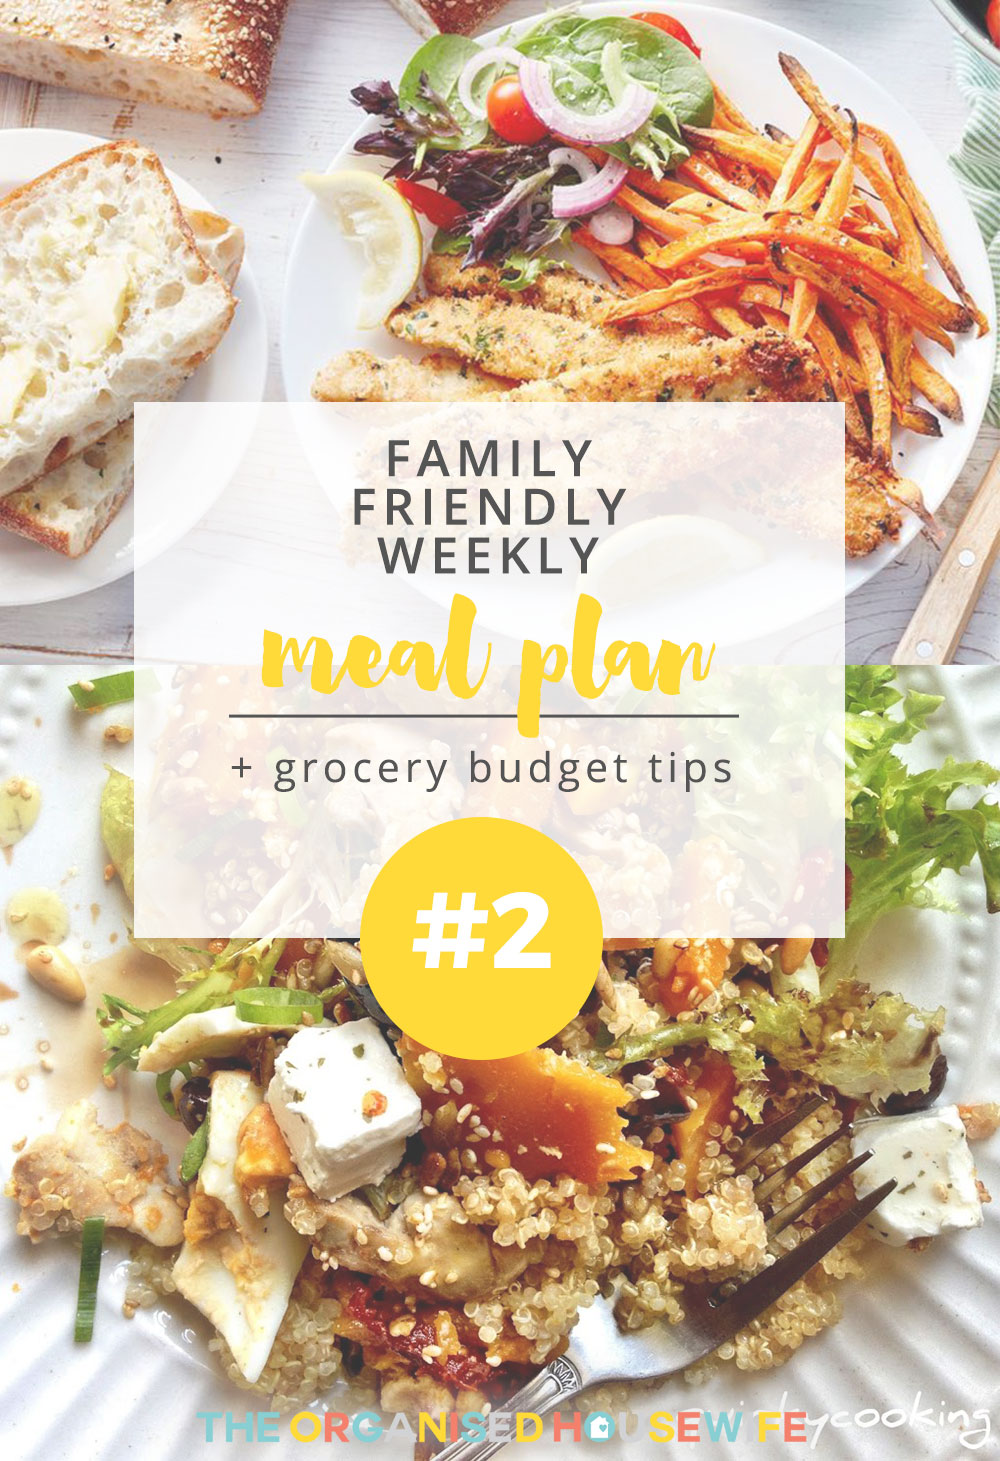 Being creative with meals 7 nights a week is a huge task. Some might say it's almost impossible! I hope this weekly meal plan inspires you this week with your dinners!